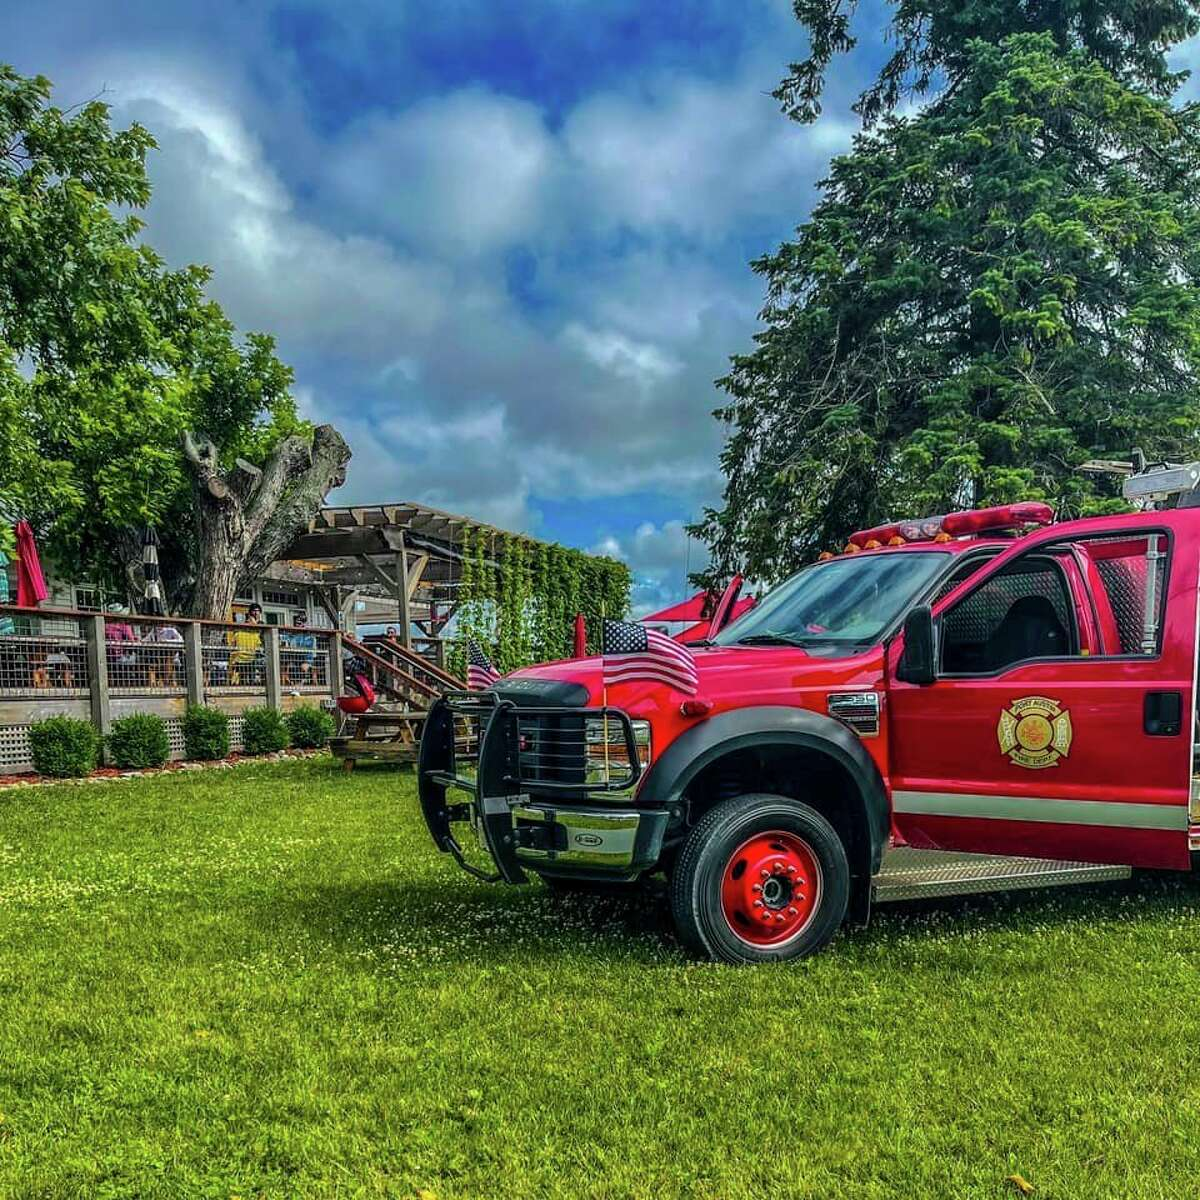 The Port Austin Fire Department truck parked at Bird Creek Farms for the July 1 fundraiser. (Josh Bletl/Courtesy Photo)